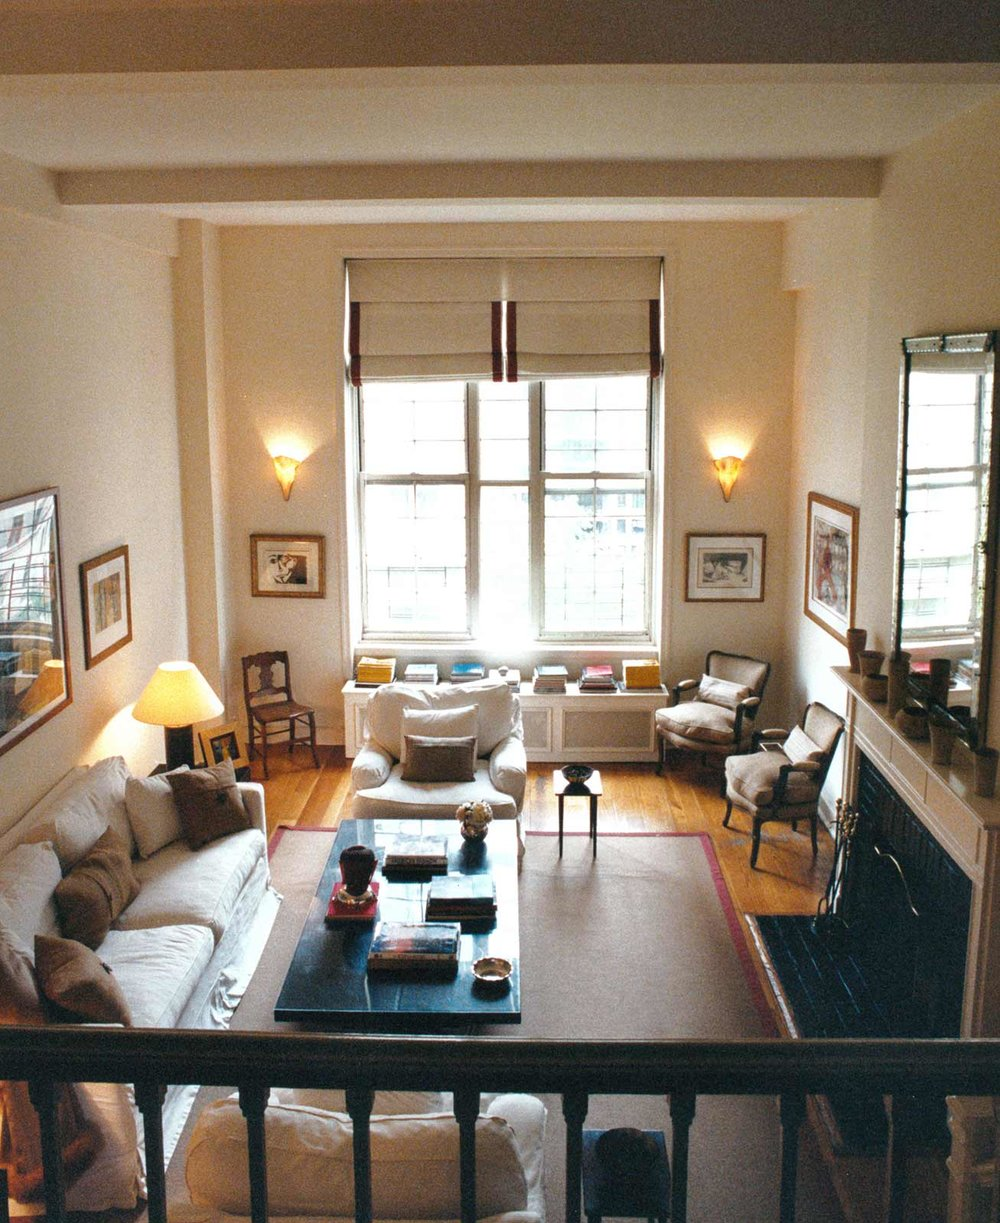 style_residential_beekman_place_ny_9.jpeg